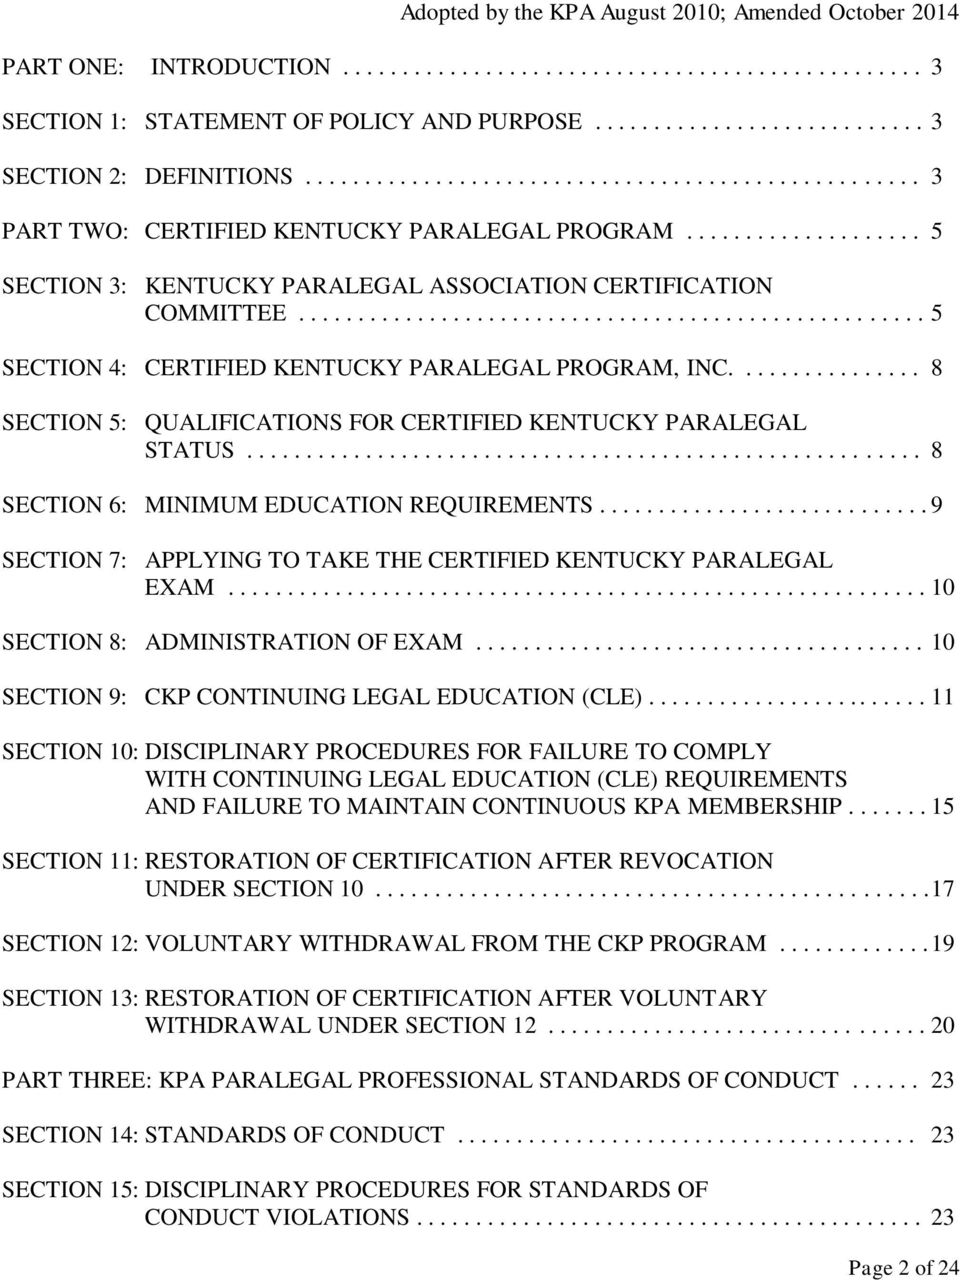 .................................................... 5 SECTION 4: CERTIFIED KENTUCKY PARALEGAL PROGRAM, INC................ 8 SECTION 5: QUALIFICATIONS FOR CERTIFIED KENTUCKY PARALEGAL STATUS.